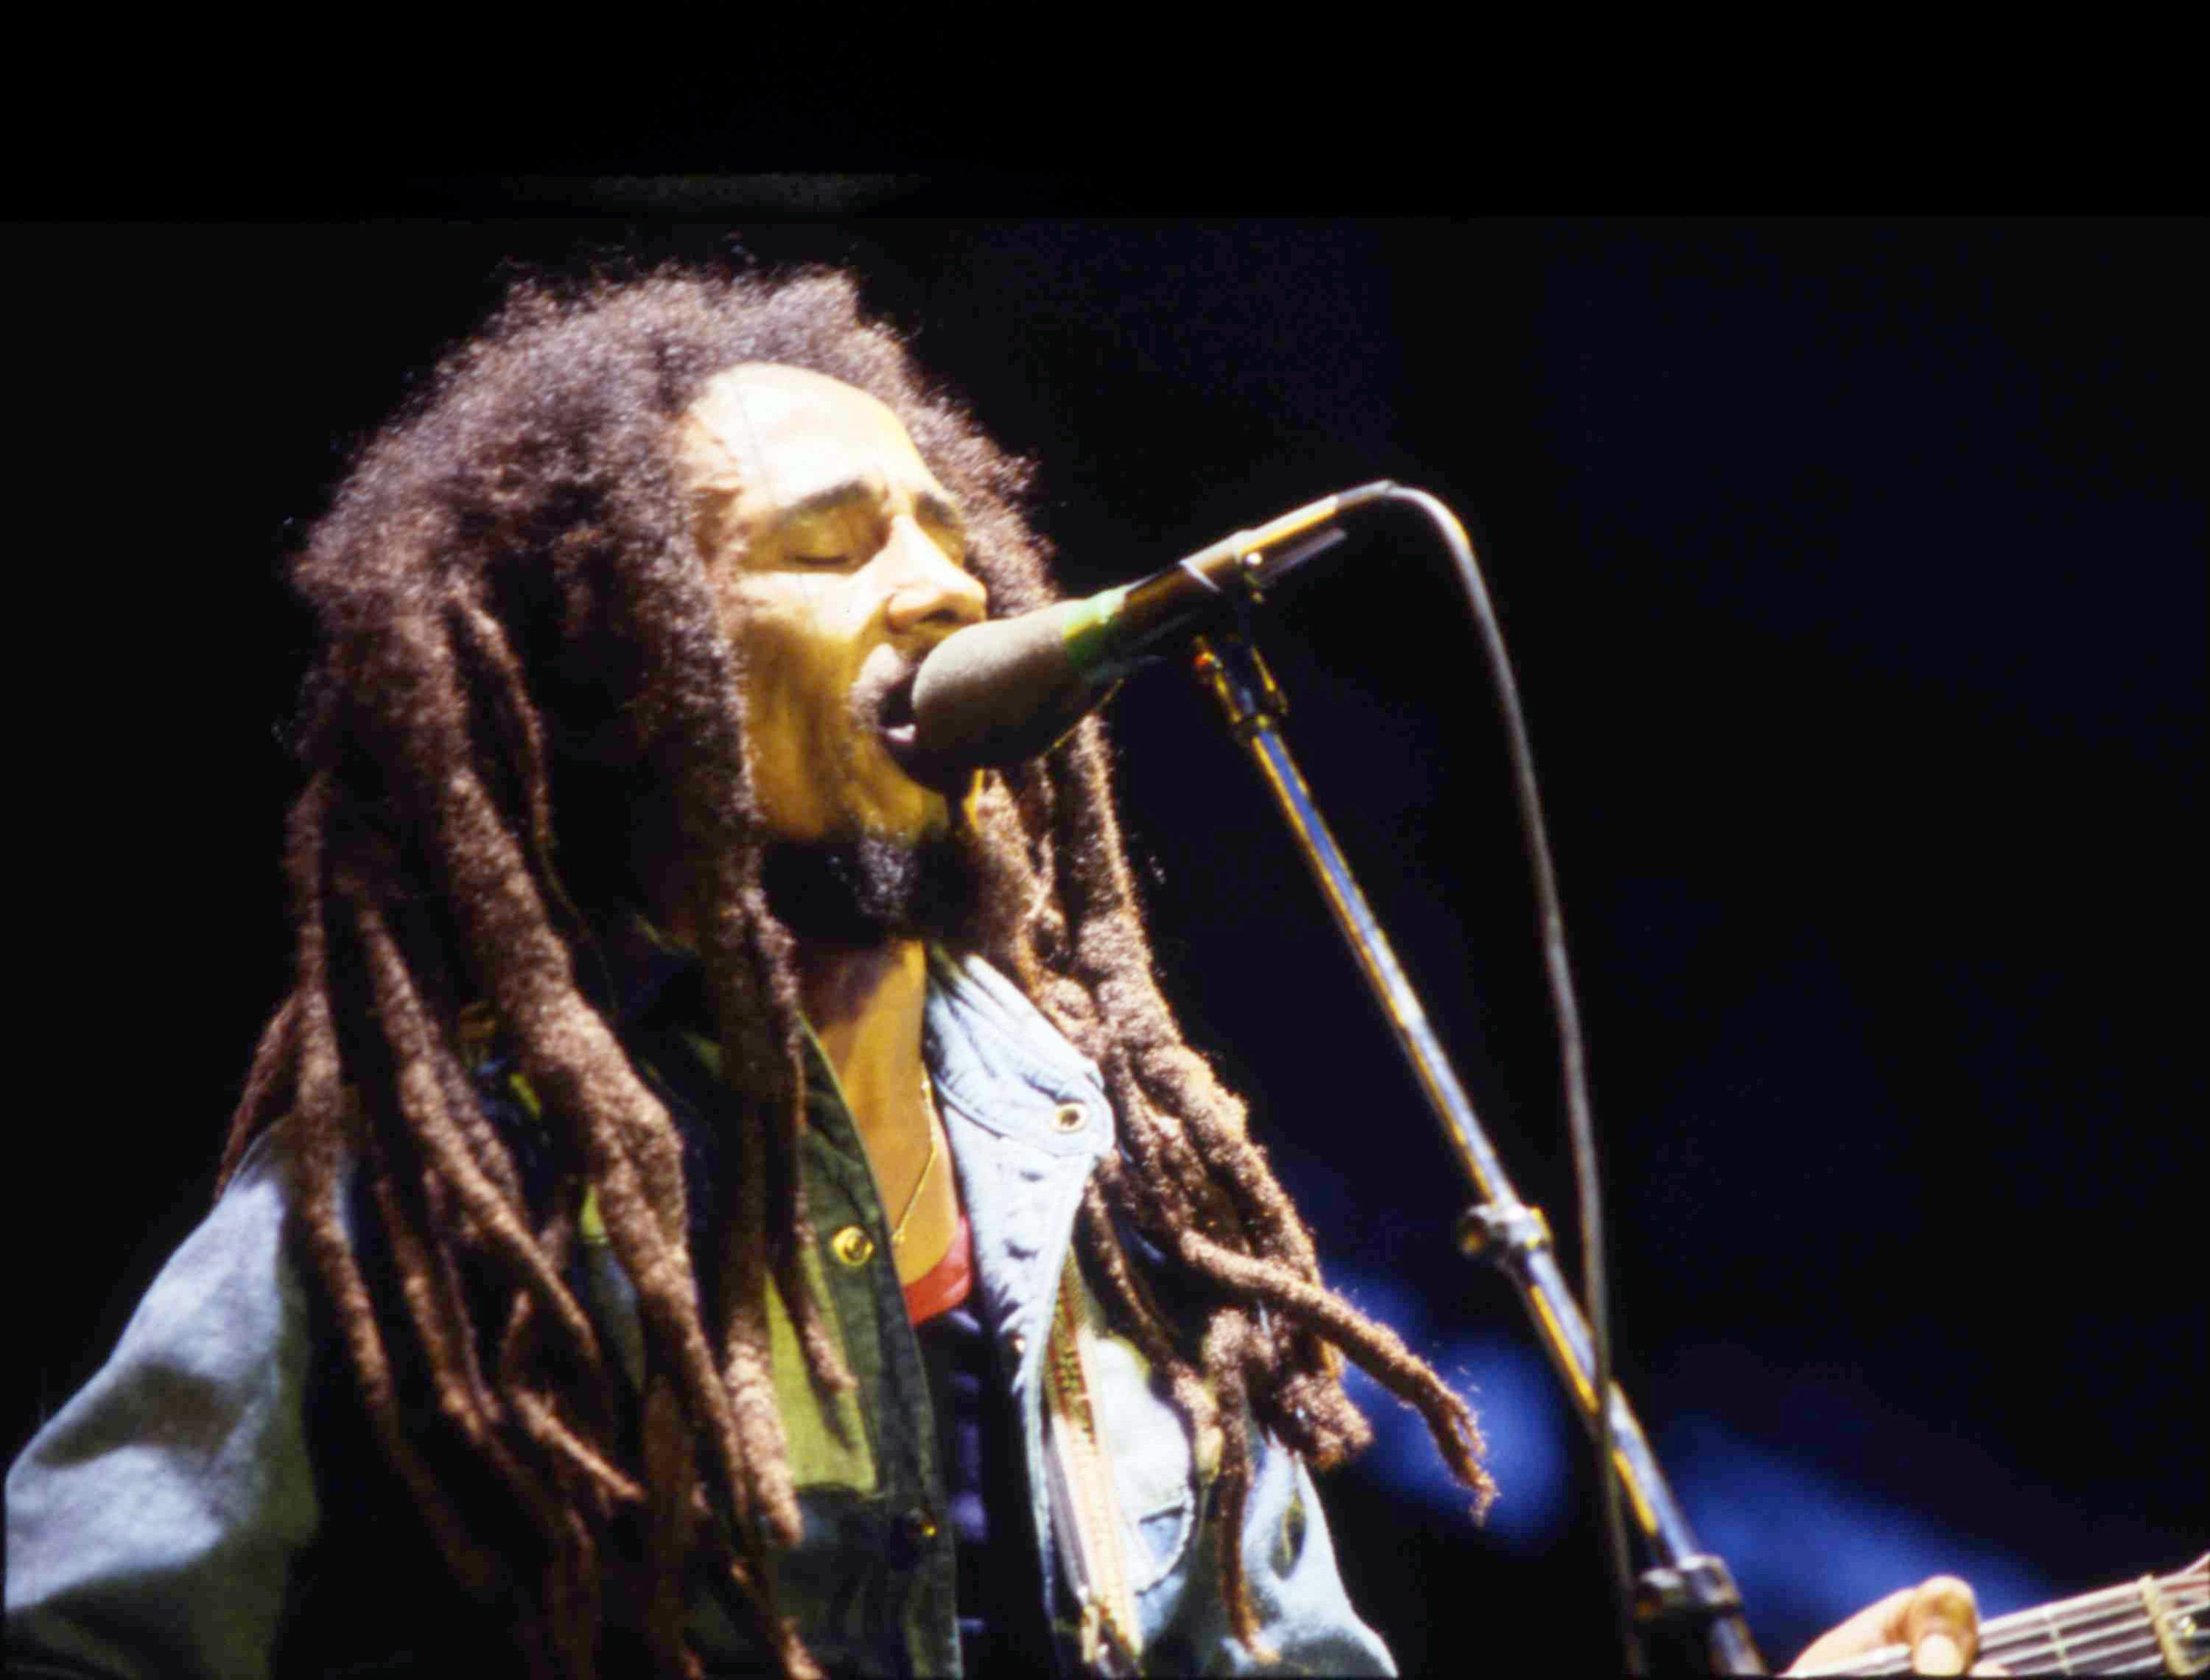 Jamaican reggae icon Bob Marley performs on stage during a concert in Bourget, Paris, on July 3, 1980. A recurrent theme in reggae music and Rastafarianism, the idea that half of history has been censored or omitted, generated a concept for USA TODAY's 2021 Never Been Told project.